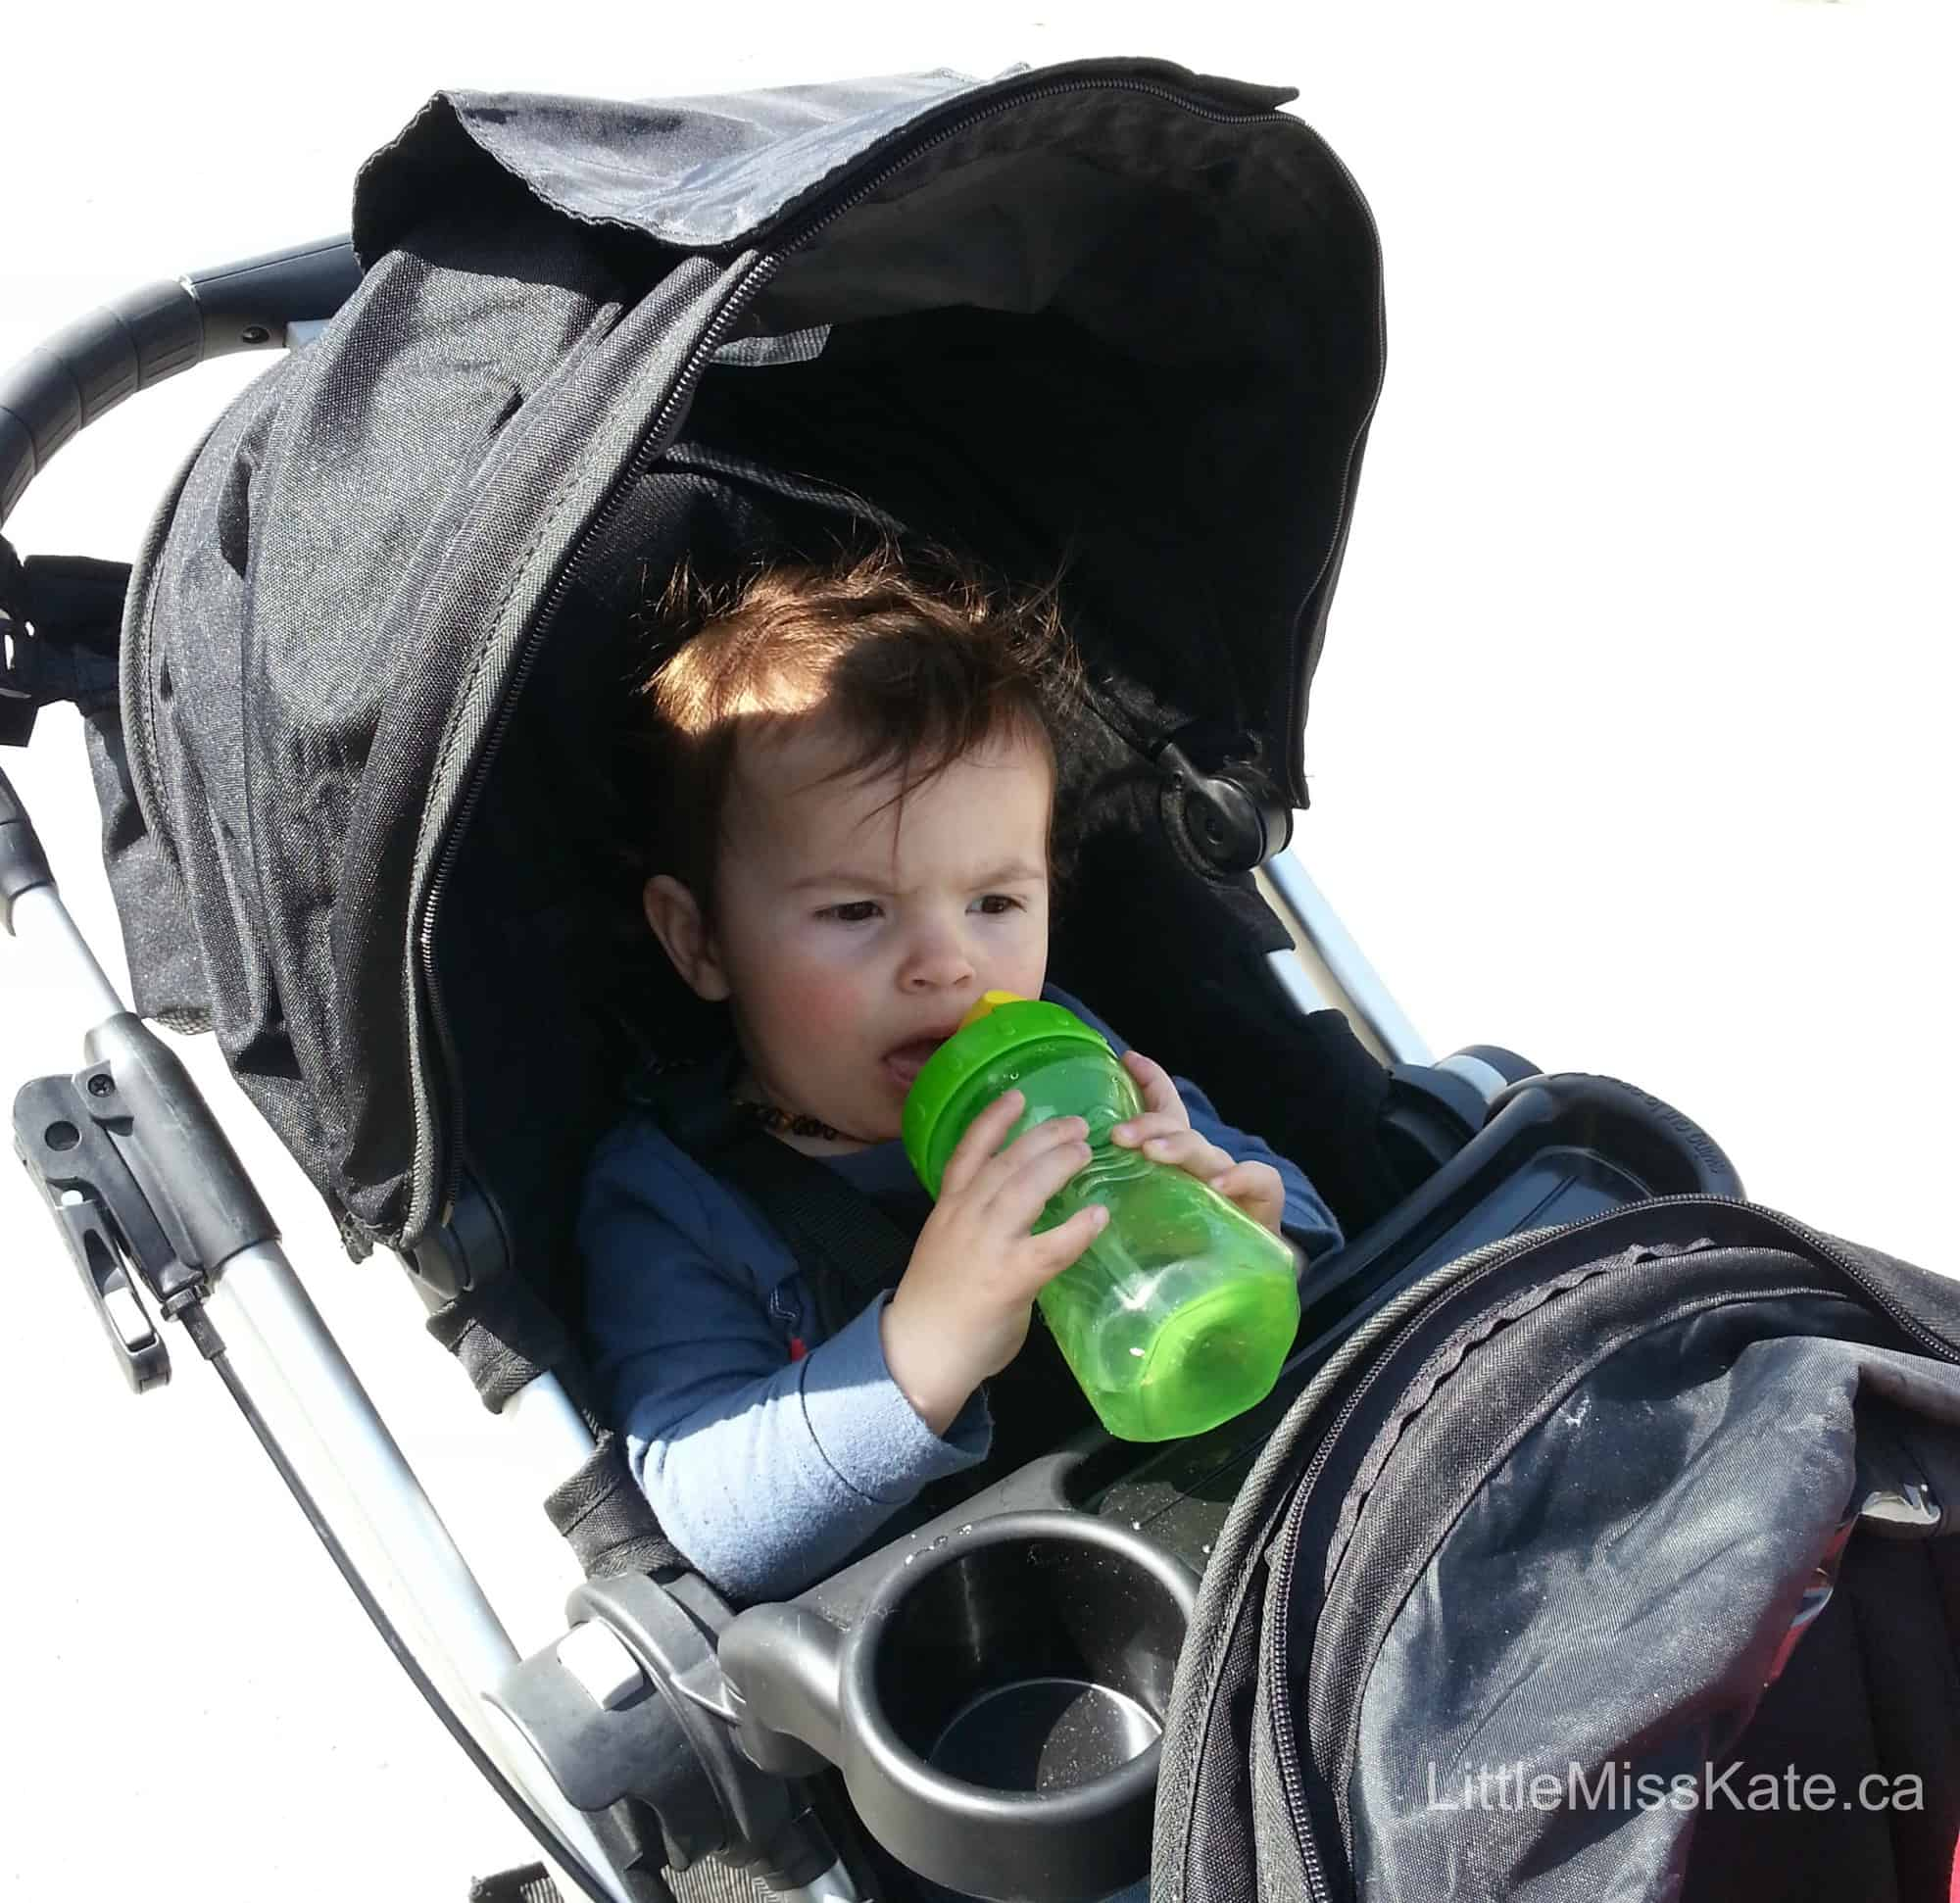 Playtex anytime straw sippy cup review